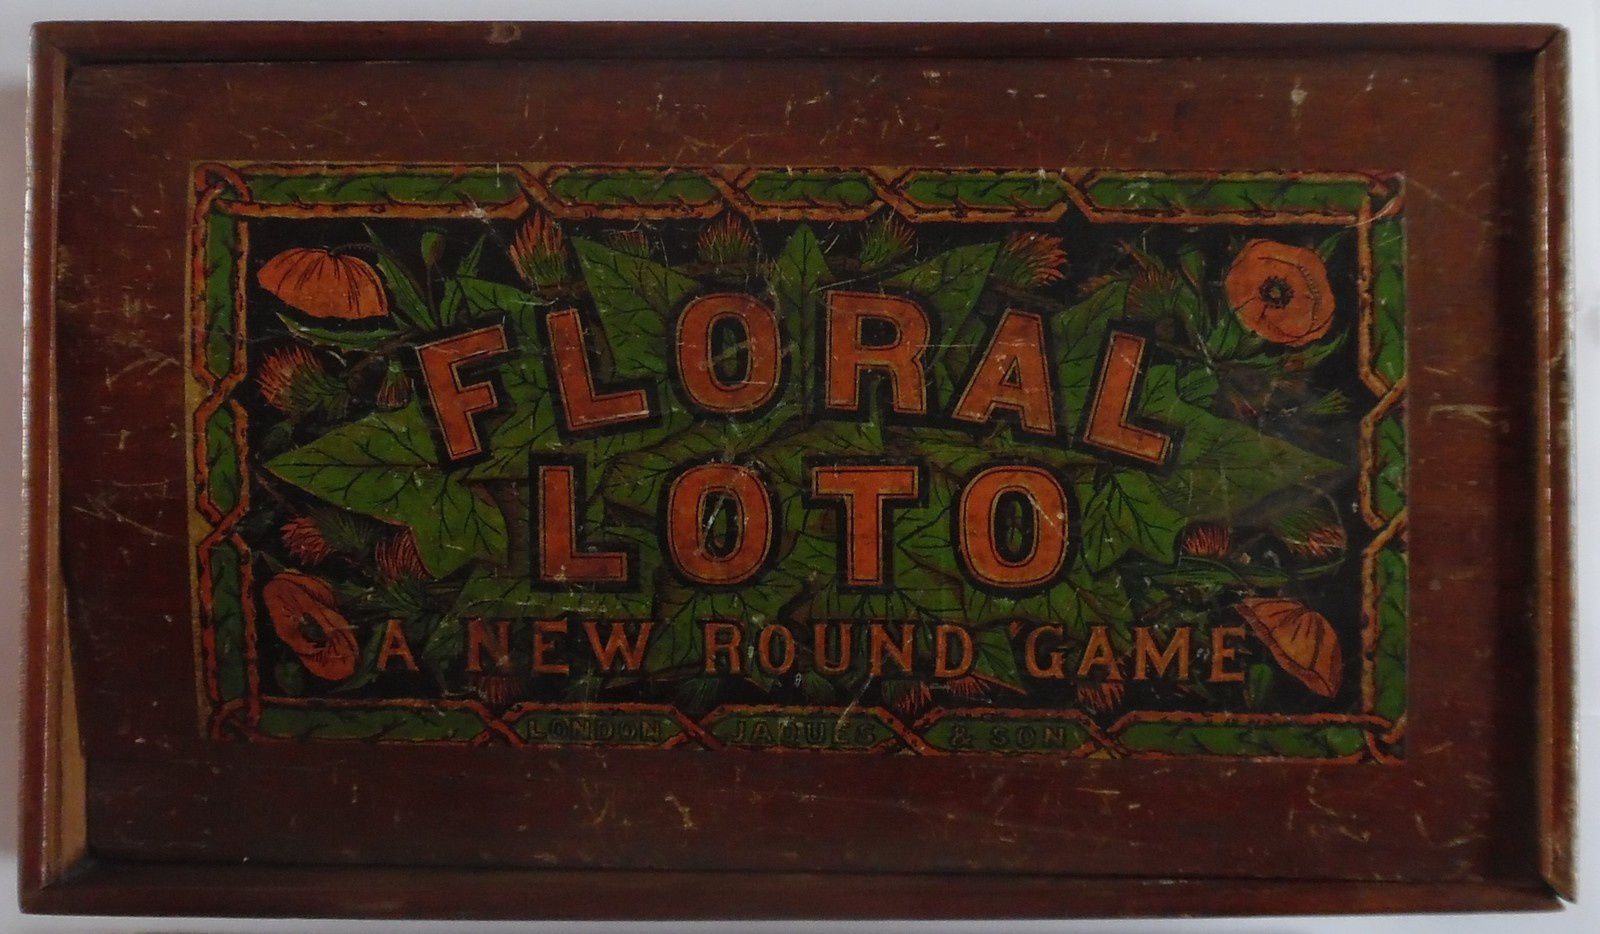 Floral Loto,a new round game